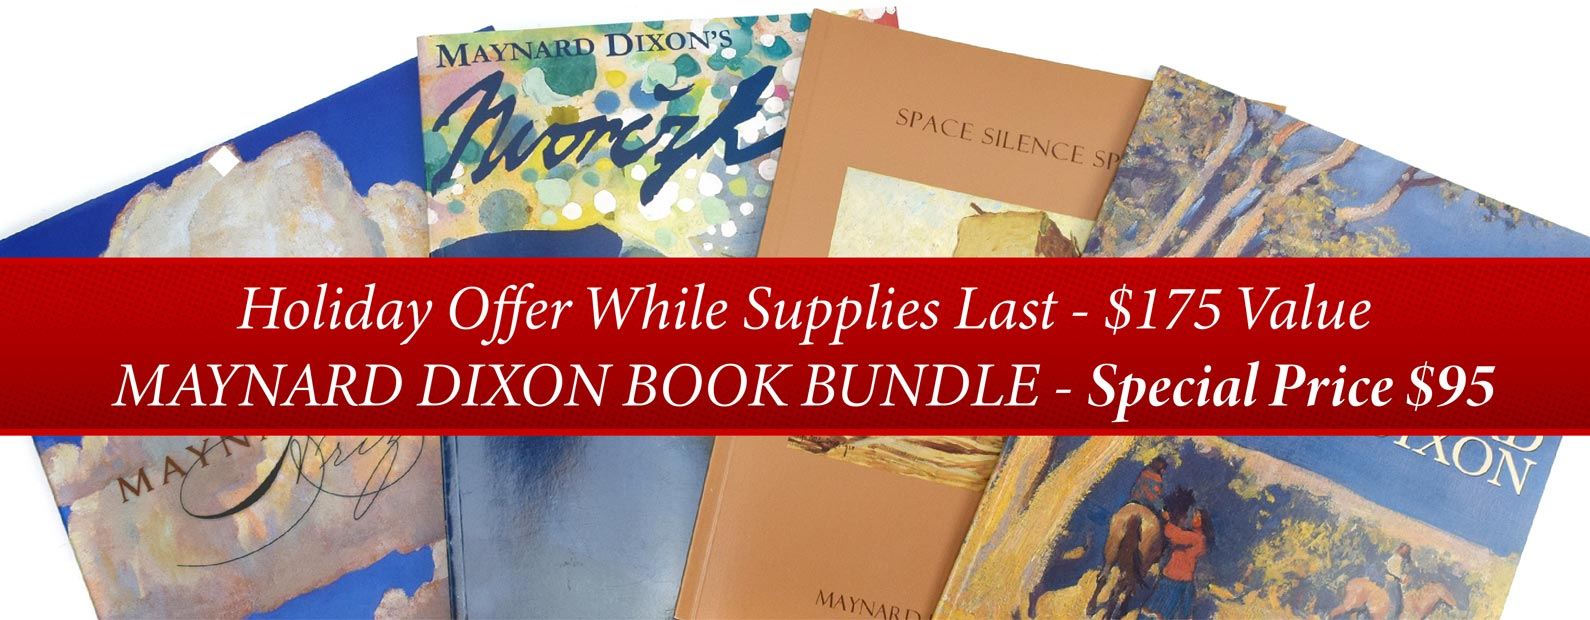 MAYNARD DIXON BOOK BUNDLE